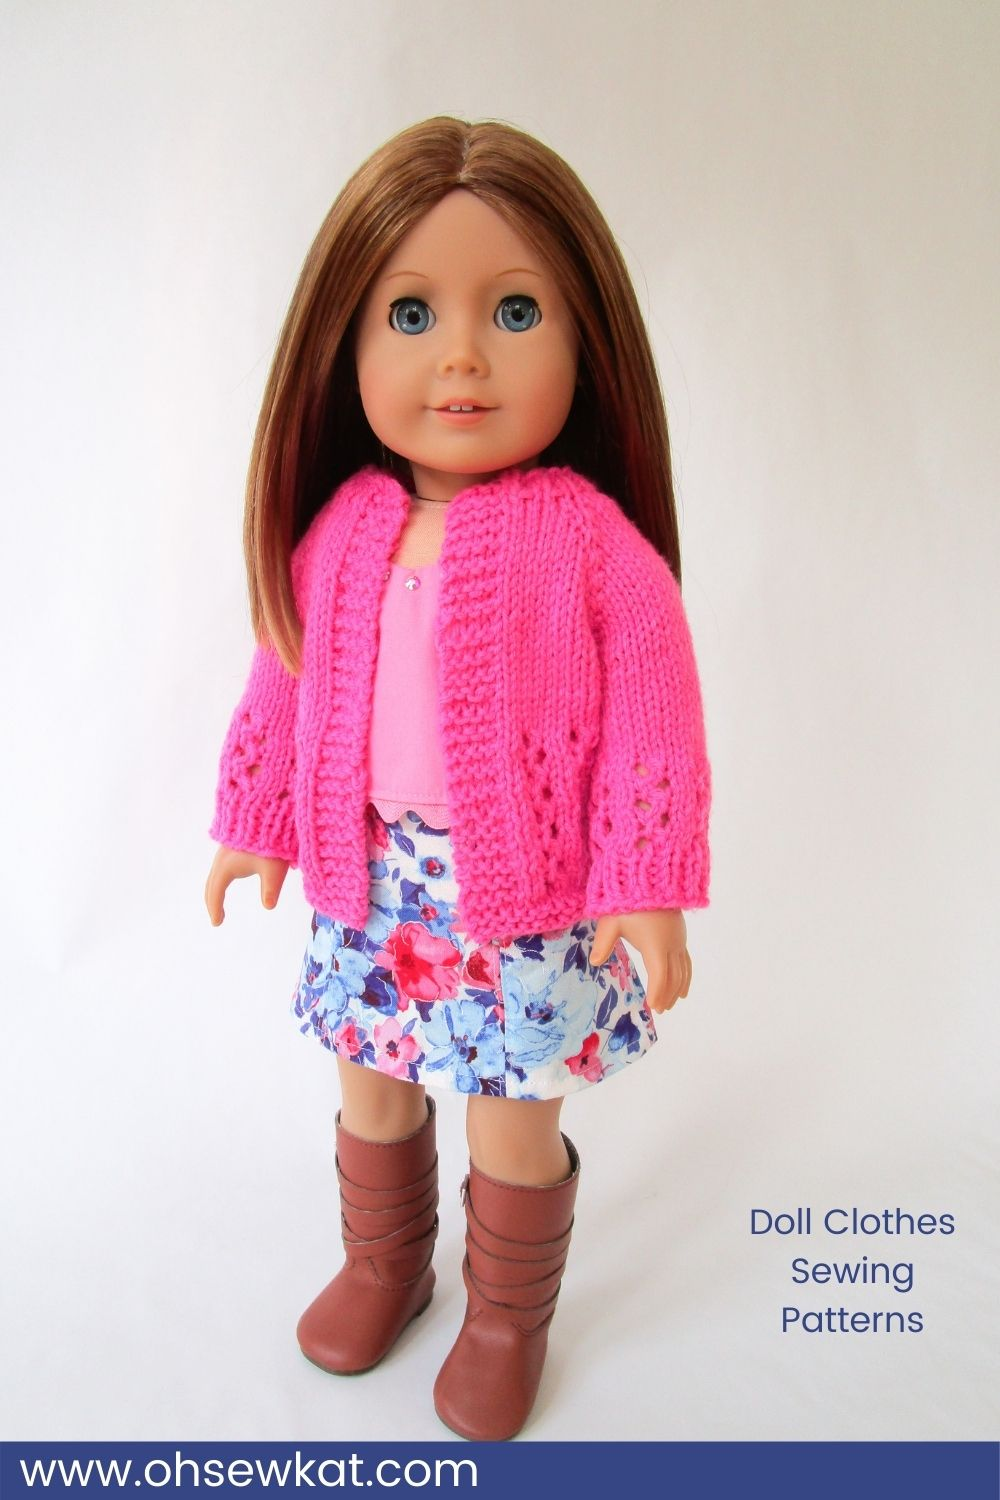 DIY your own doll clothes with easy to sew PDF patterns from Oh Sew Kat! Emily is wearing a Popsicle Top, Sixth Grade Skirt, and a Karina sweater.